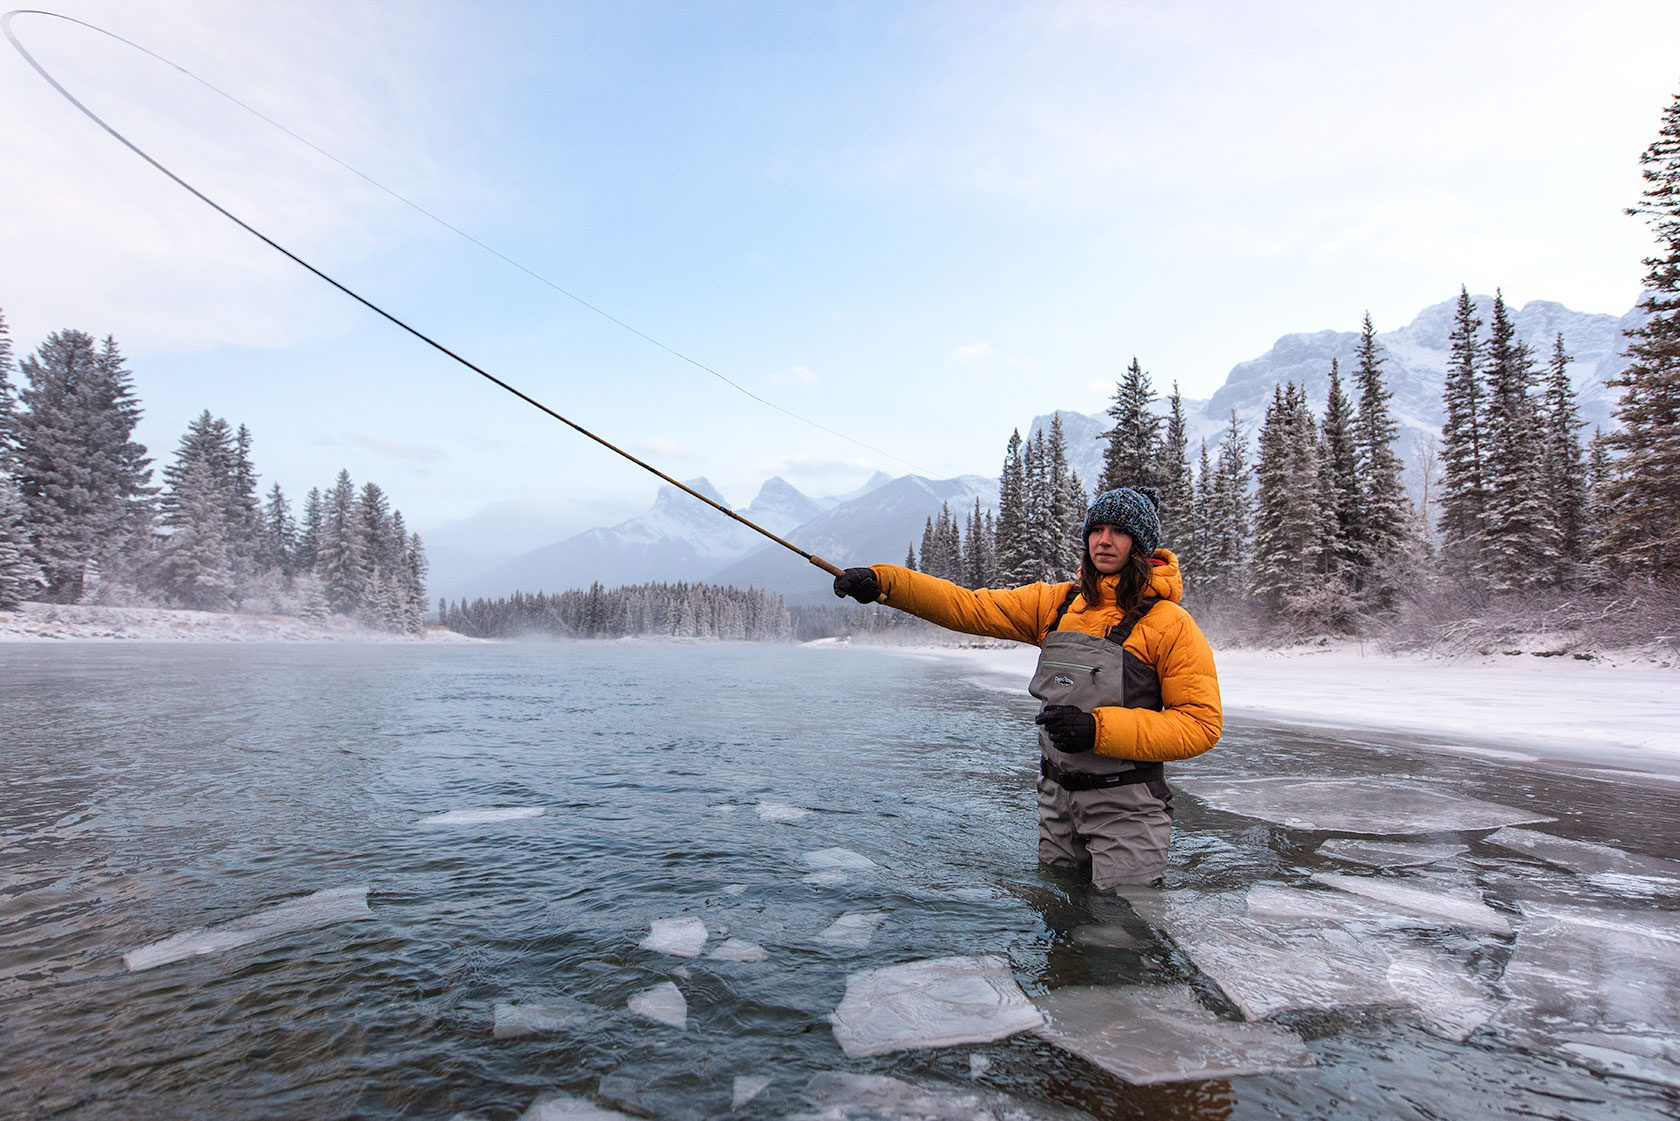 austin-trigg-patagonia-banff-alberta-winter-canada-lifestyle-adventure-canmore-bow-river-fly-fishing-ice-float-mountains.jpg